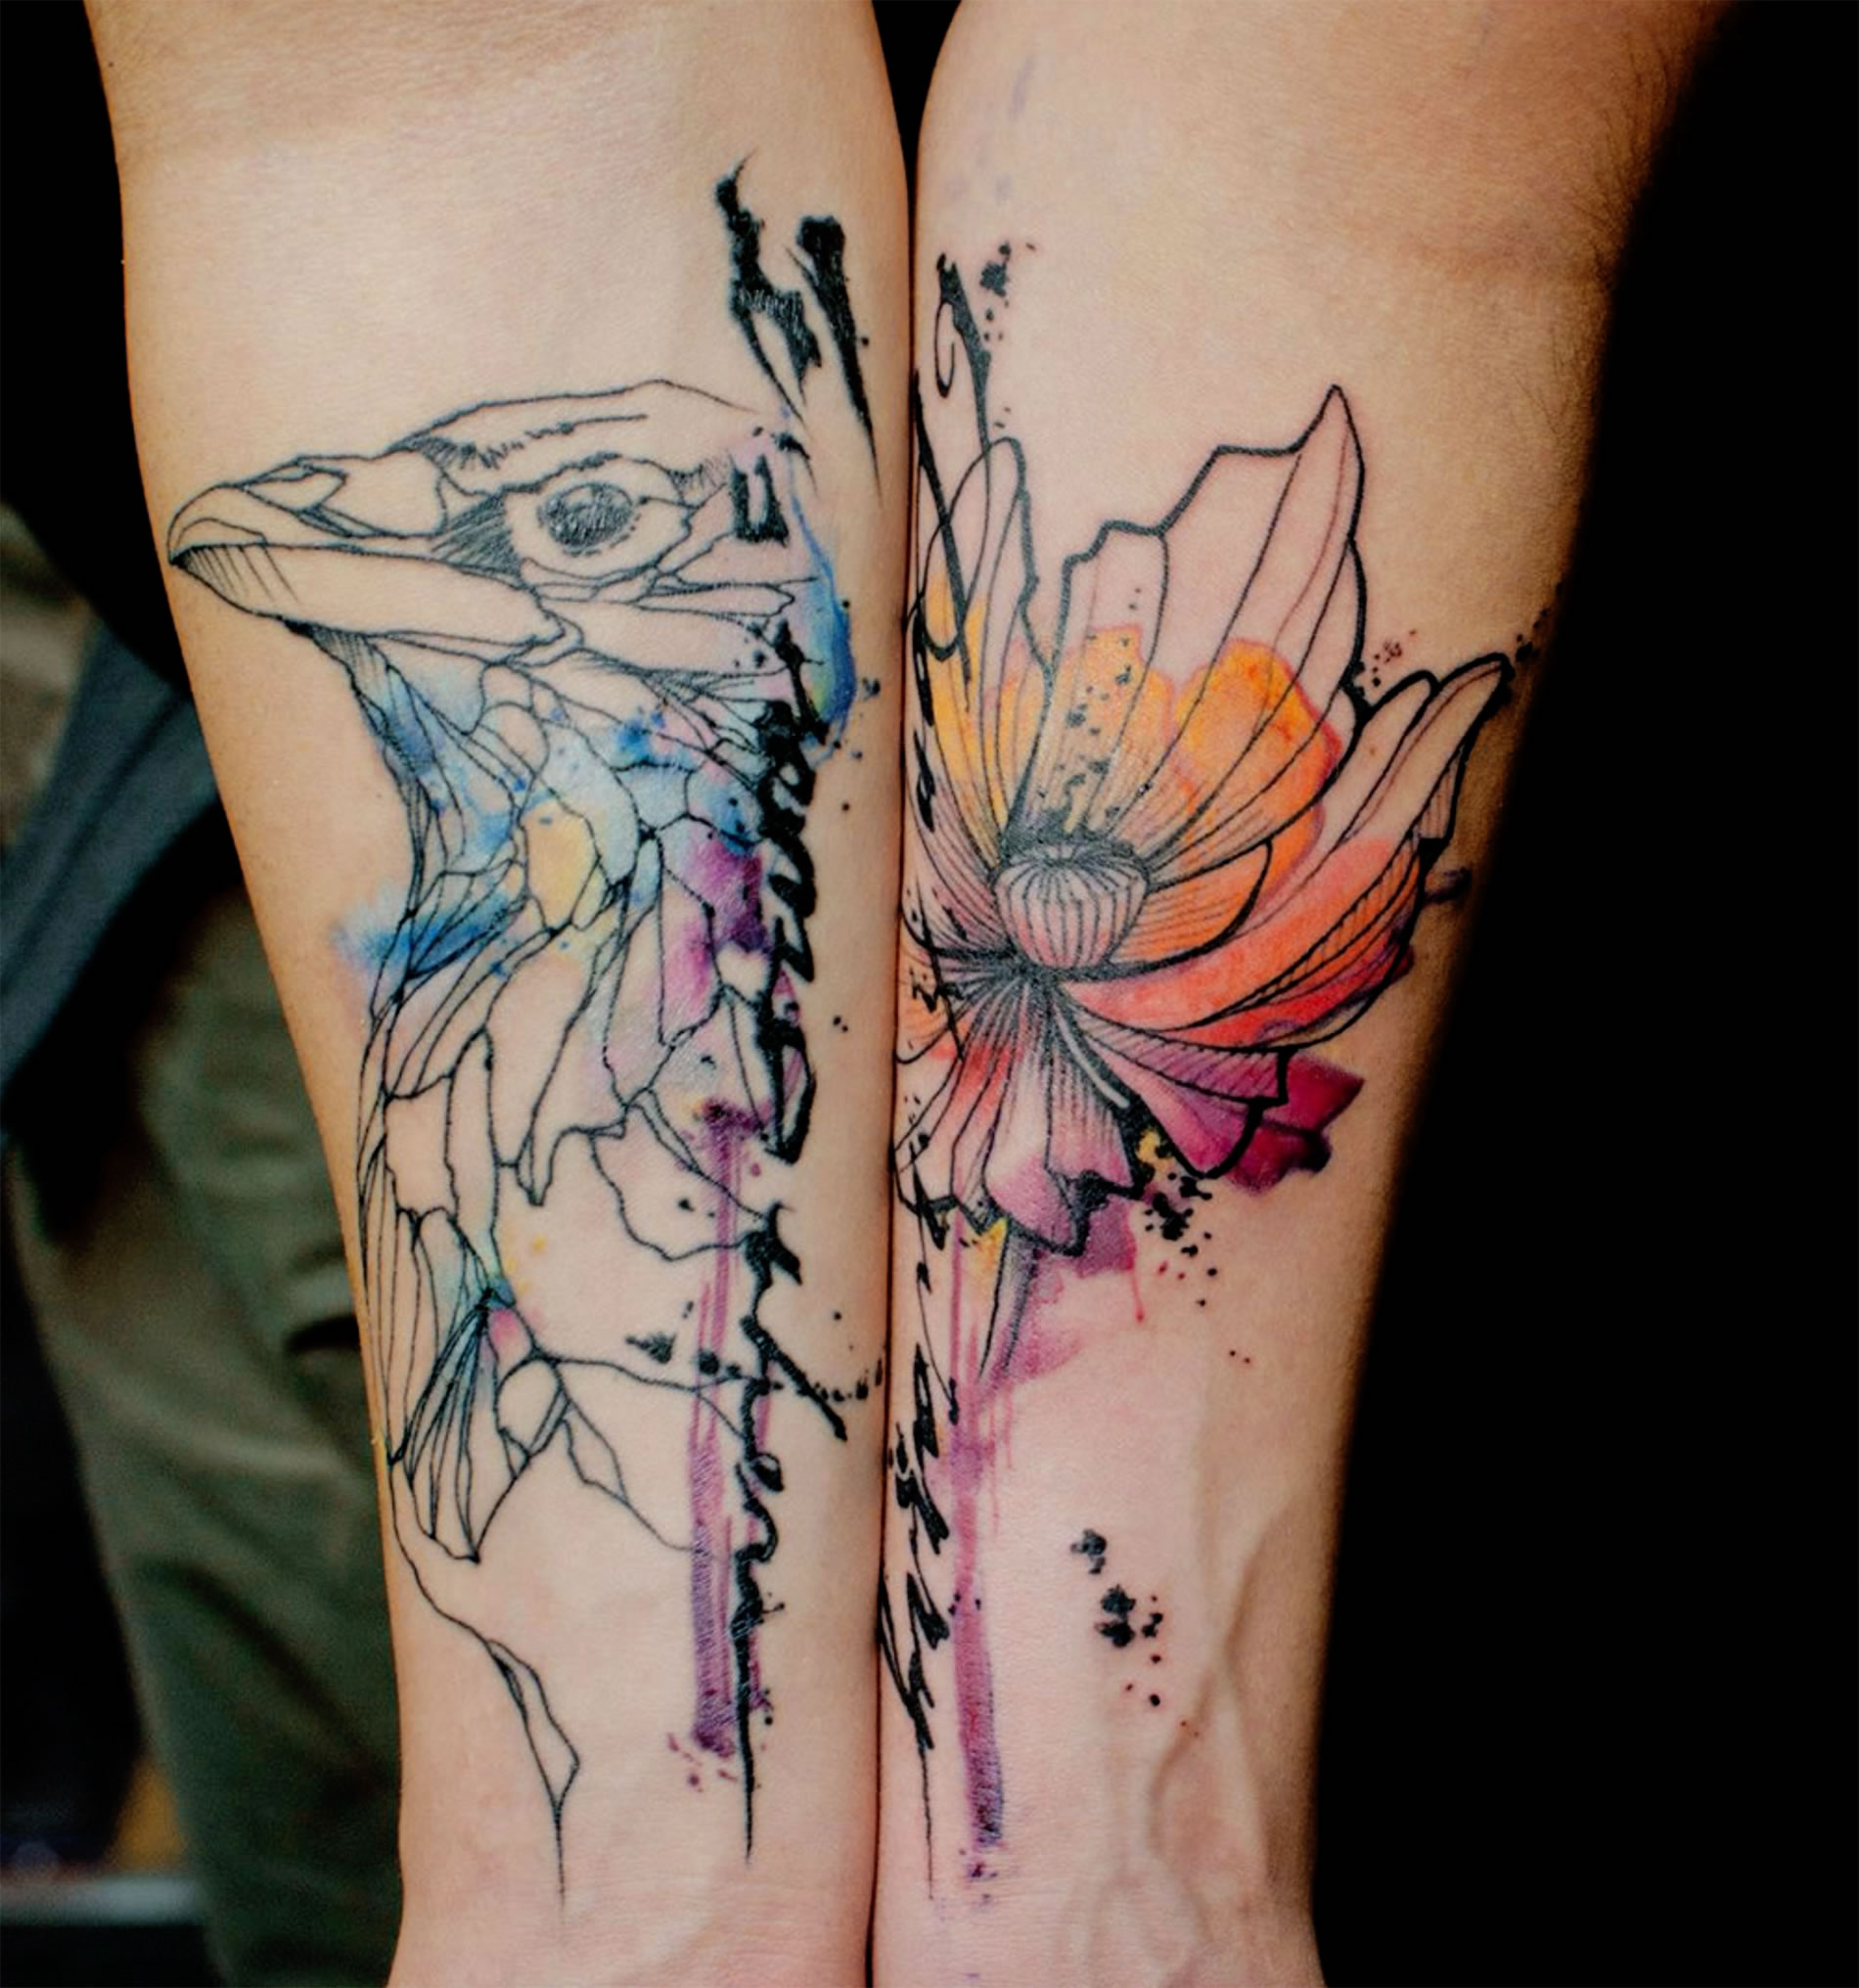 Stencil And Watercolor Tattoos By Klaim Scene360